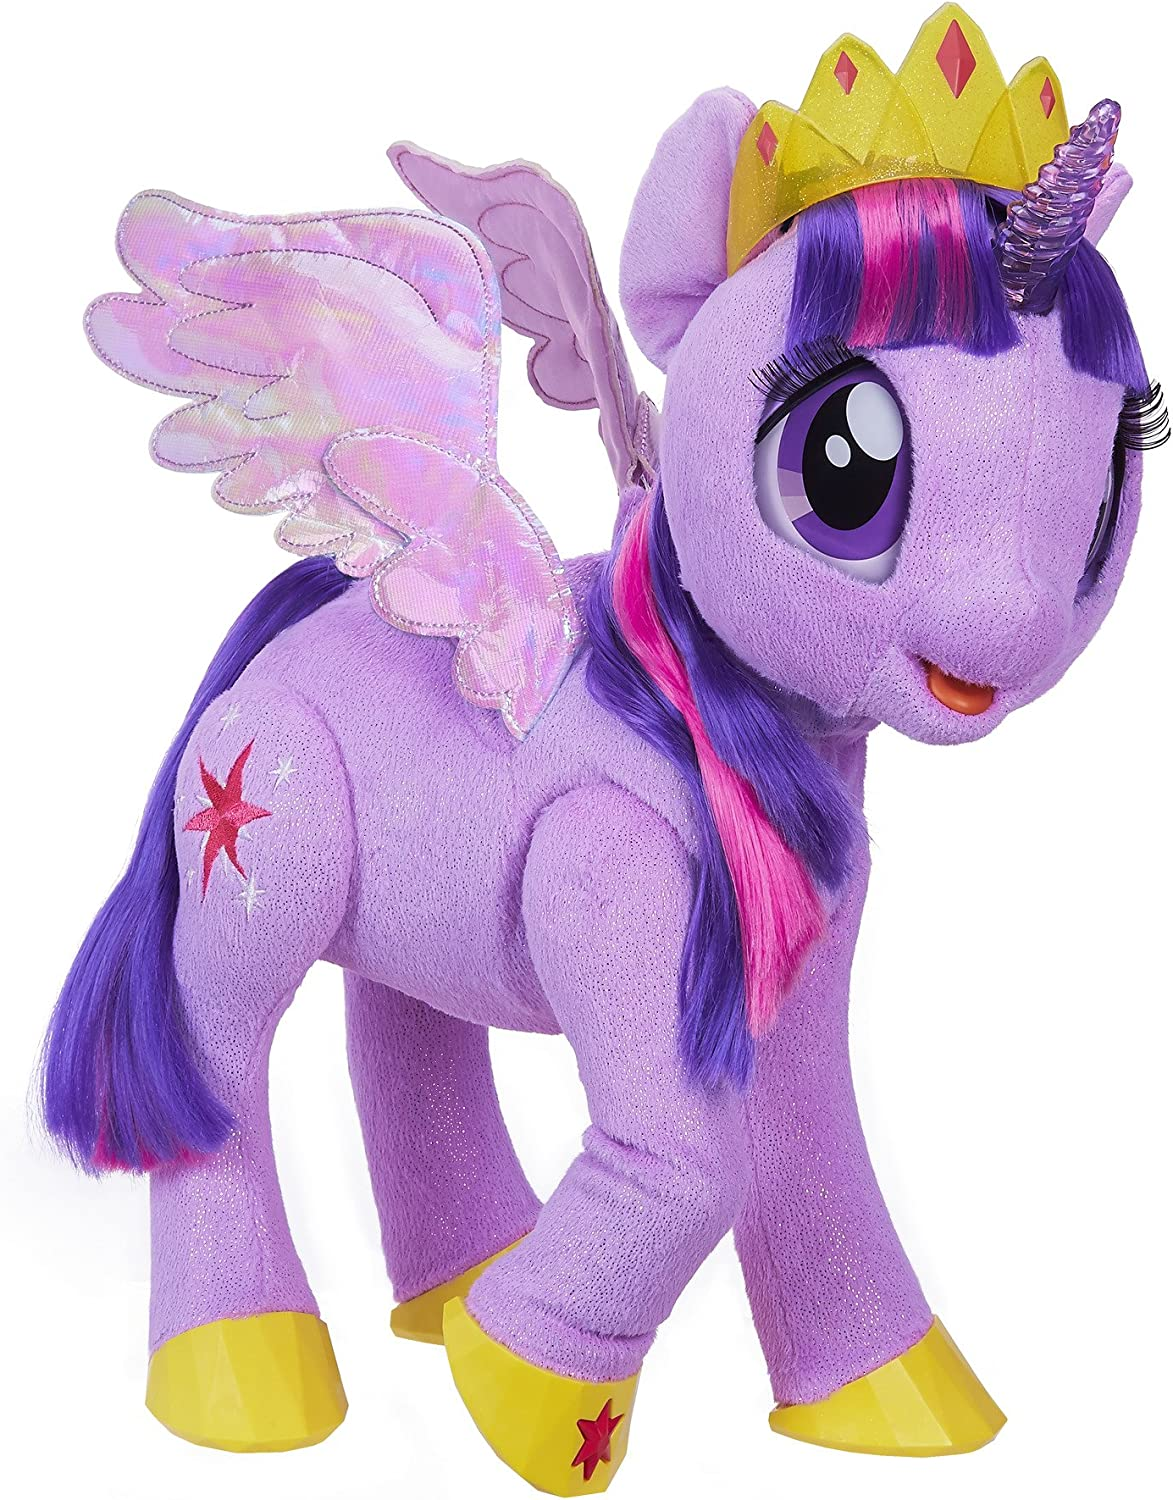 my little pony movie toy magical princess twilight sparkle interactive plush says 90 phrases